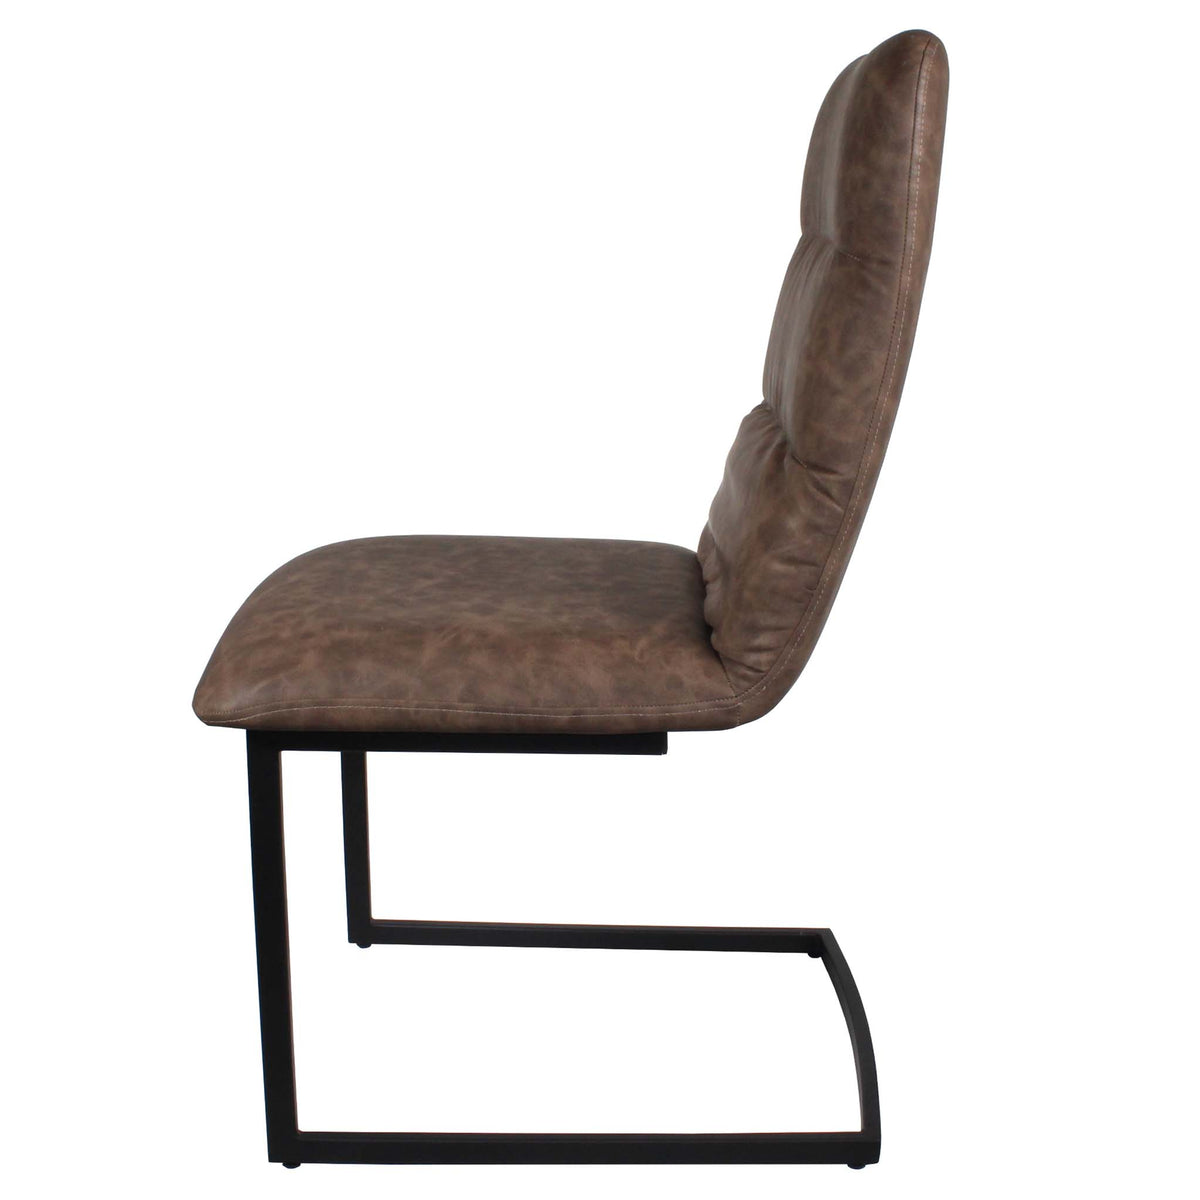 Side view of the Coffee Maitland Faux Leather Dining Chairs by Roseland Furniture